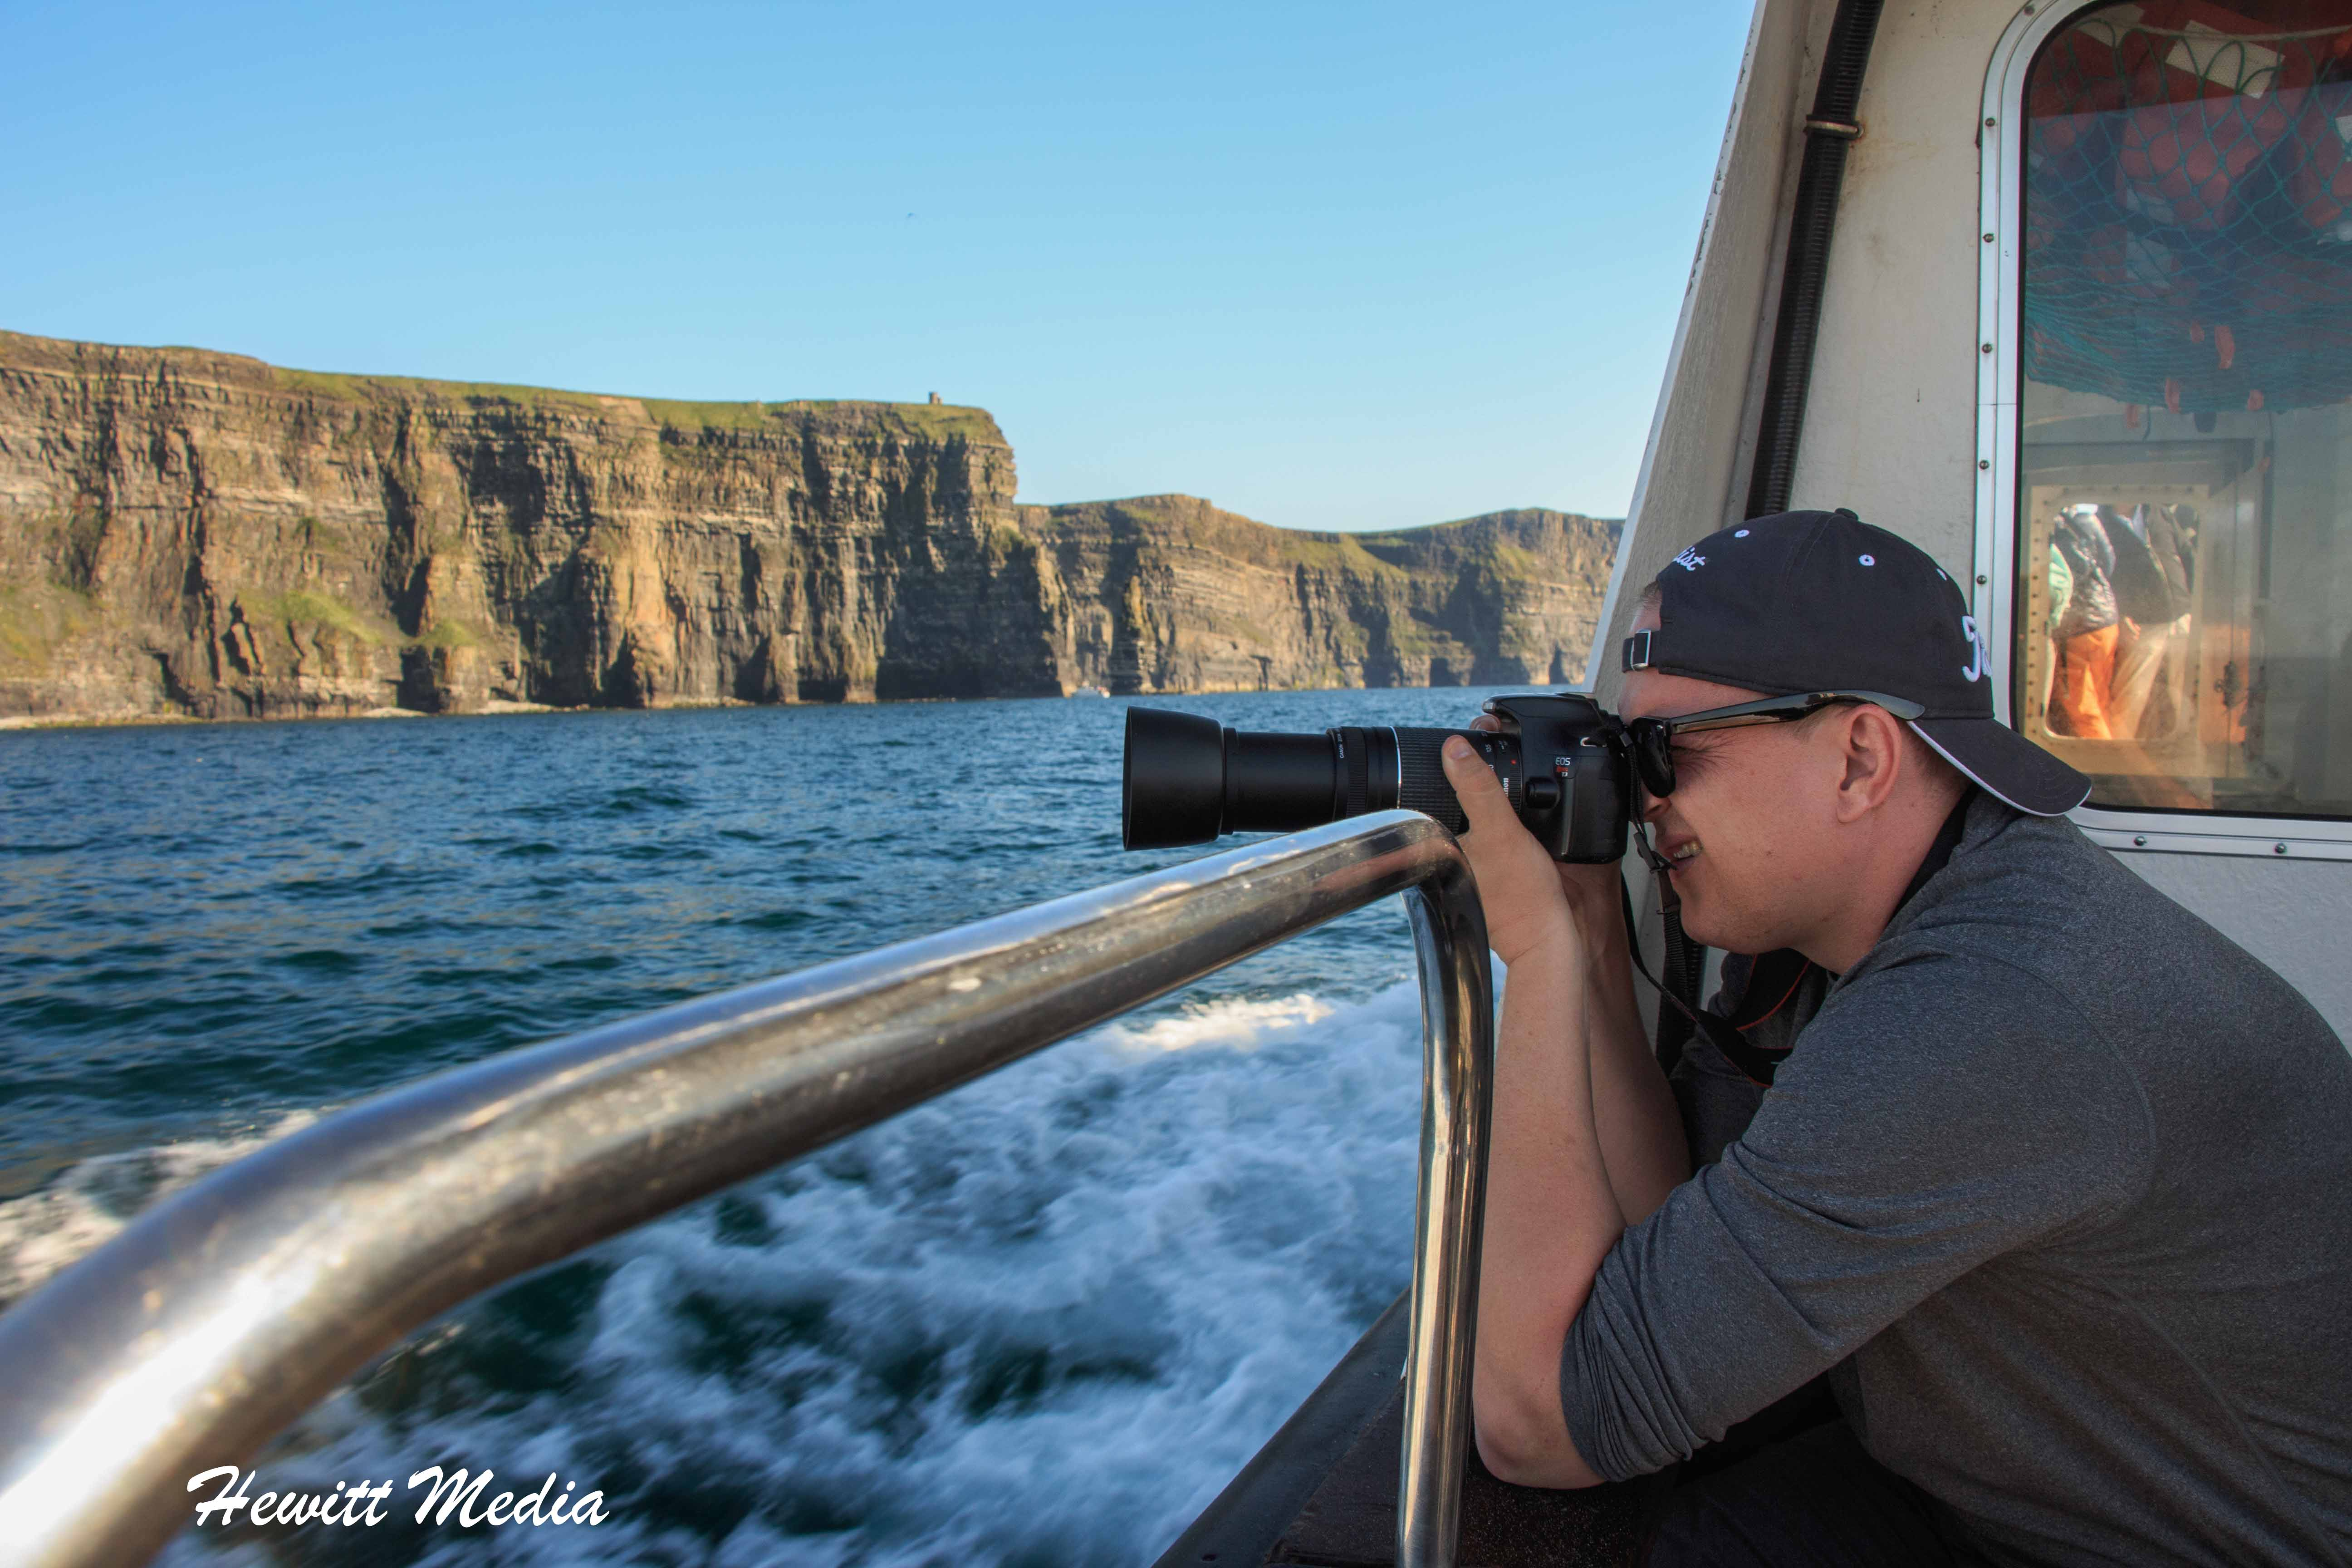 Photographing the birds nesting in the cliffs at the Cliffs of Moher